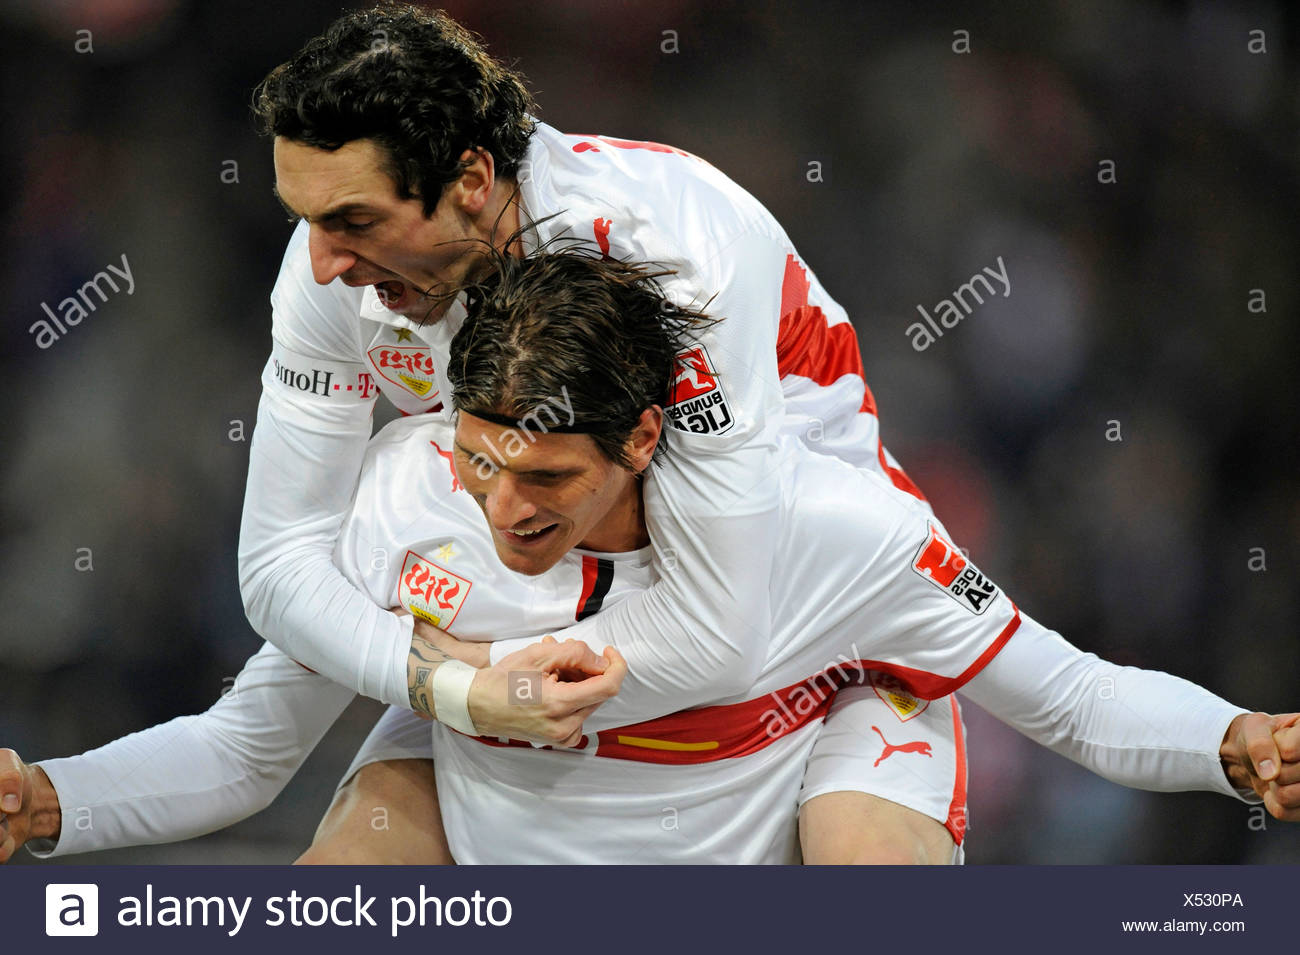 Goal celebration, Mario Gomez, bottom, and Roberto Hilbert, on top, VfB Stuttgart - Stock Image